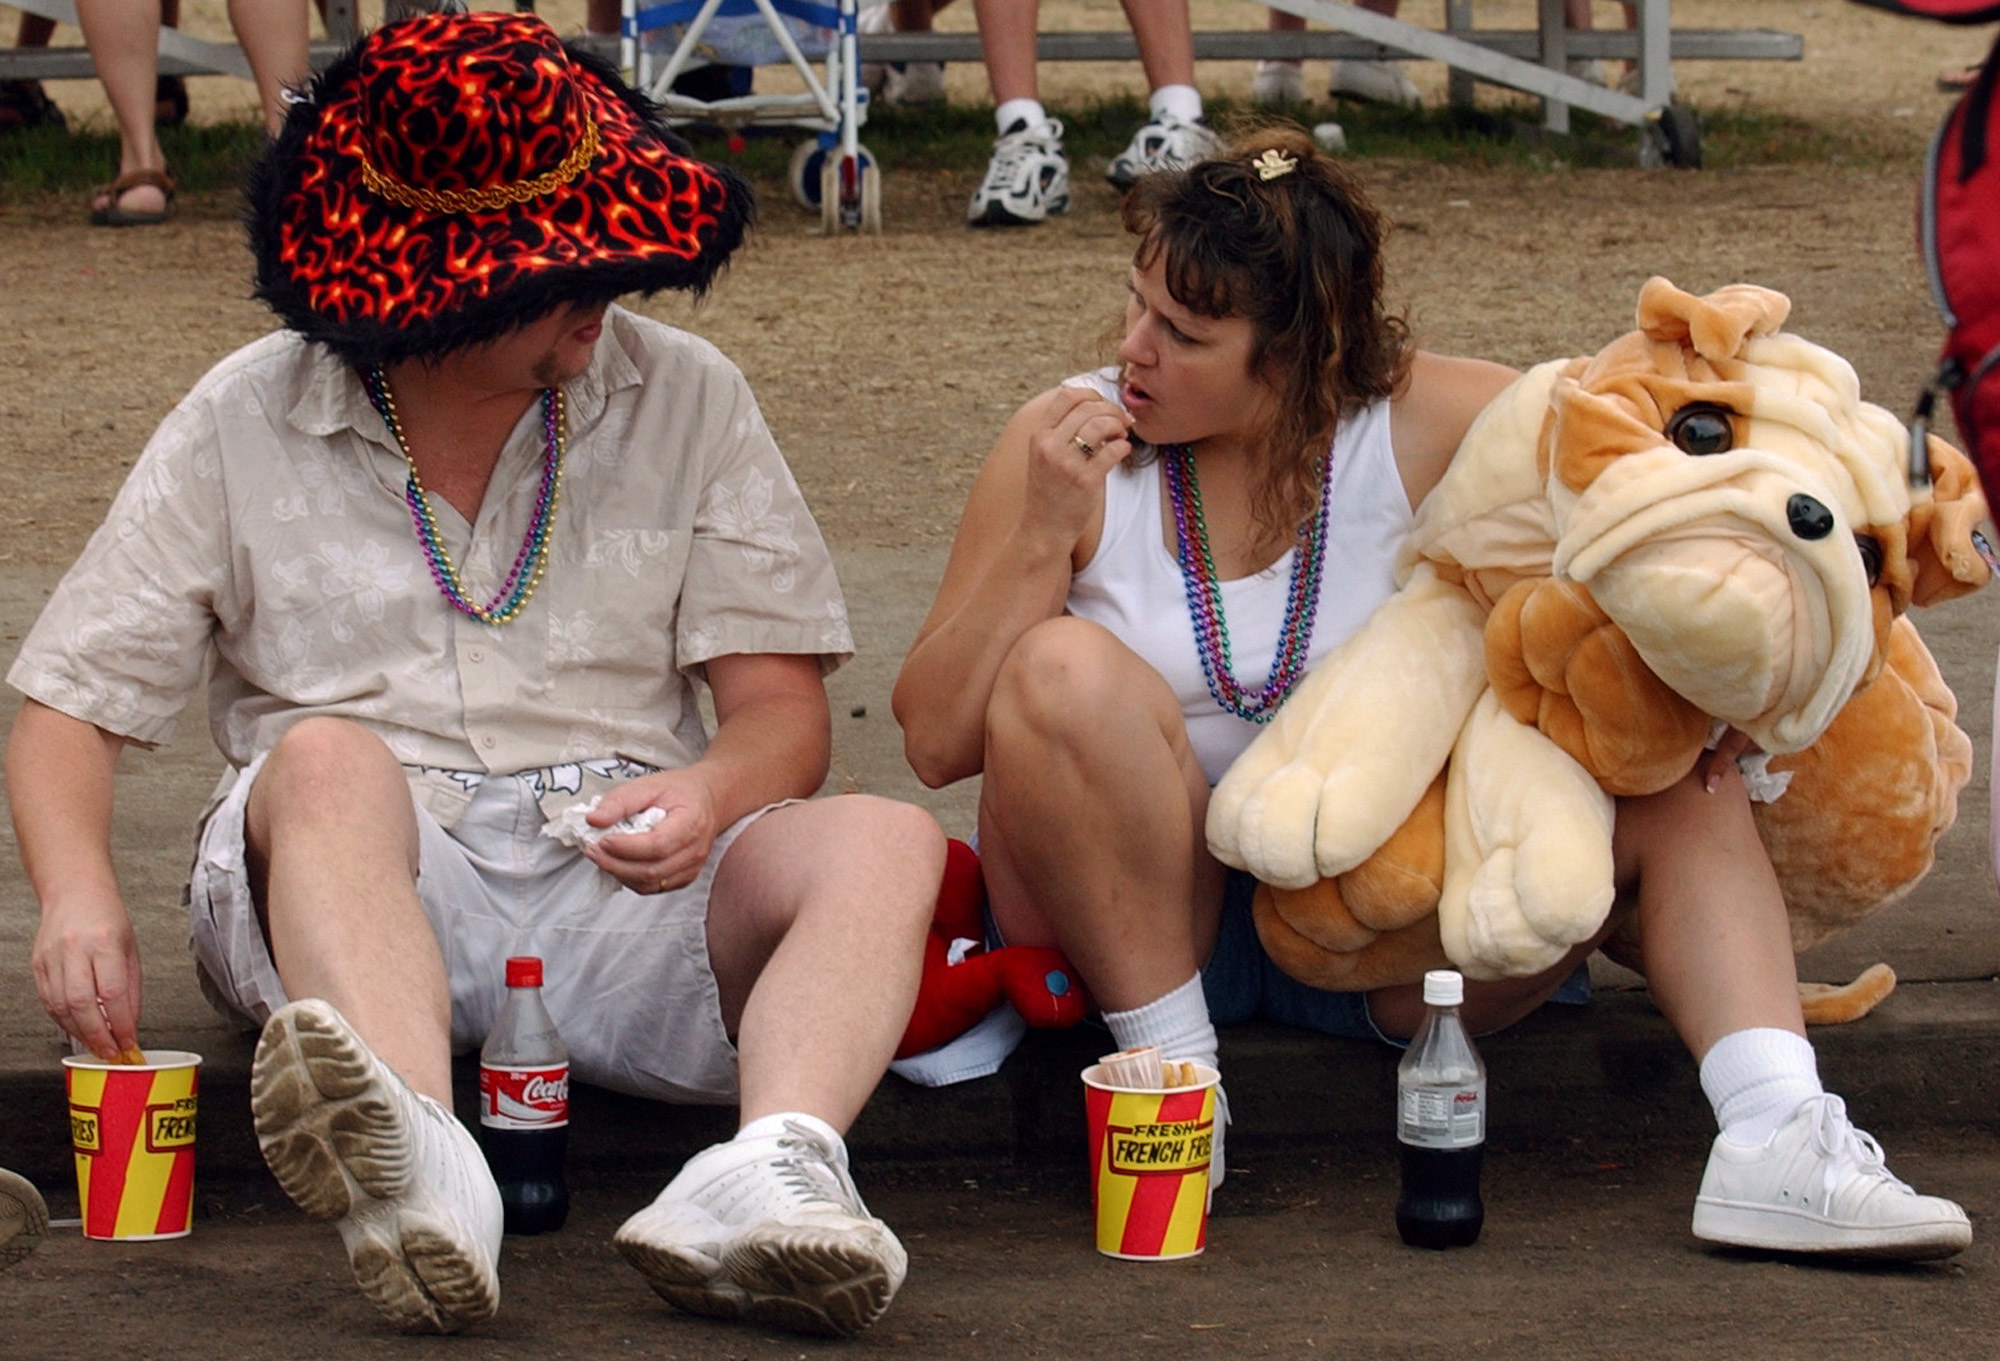 Two people eat popcorn and sit on a curb with prizes from the Minnesota State Fair